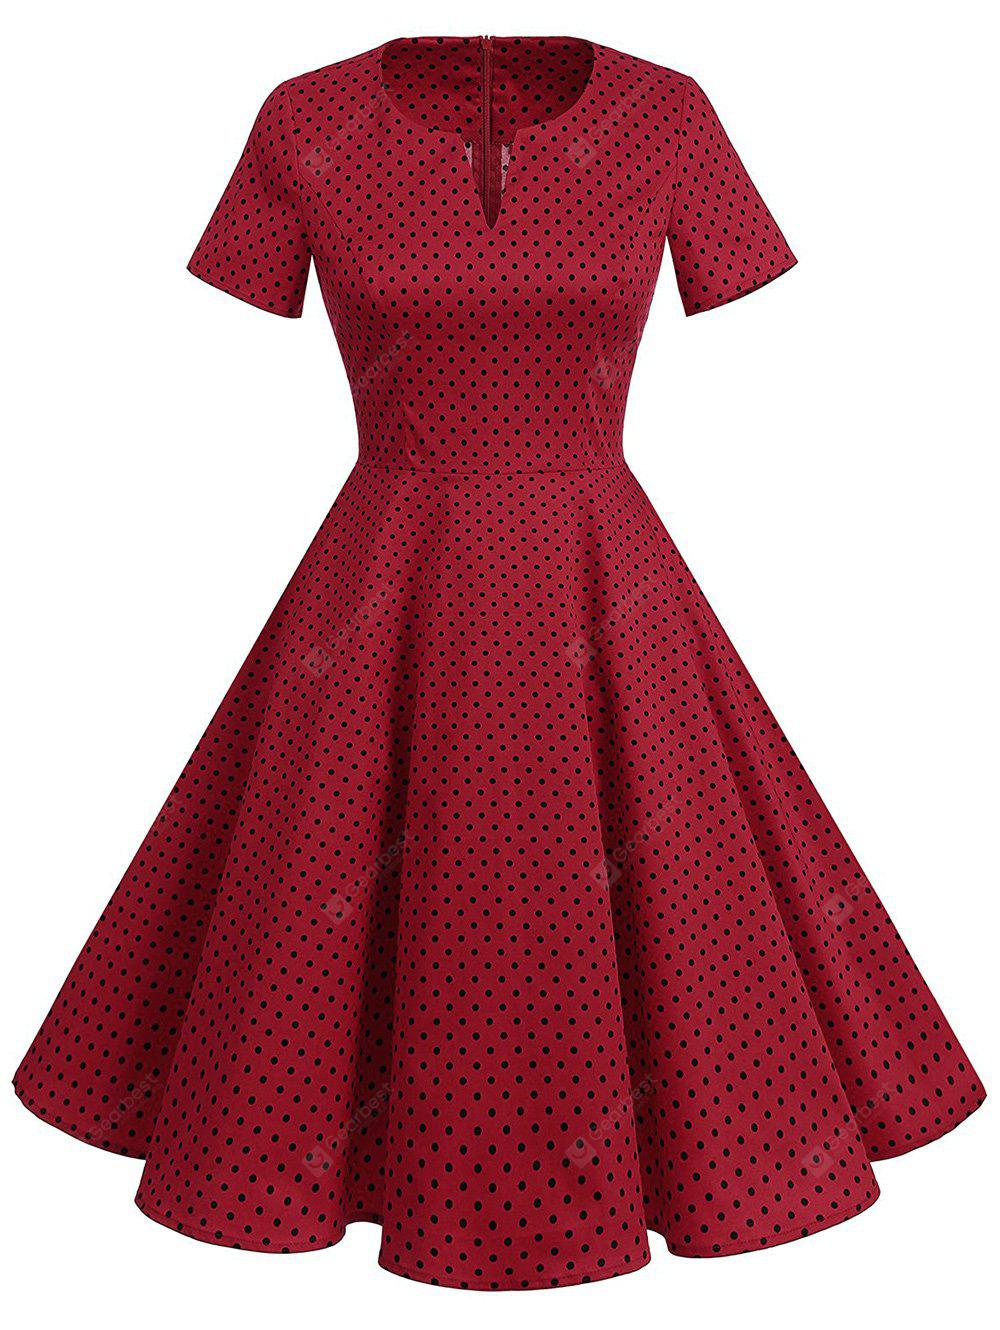 Polka Dot Fit y Flare Vintage Dress